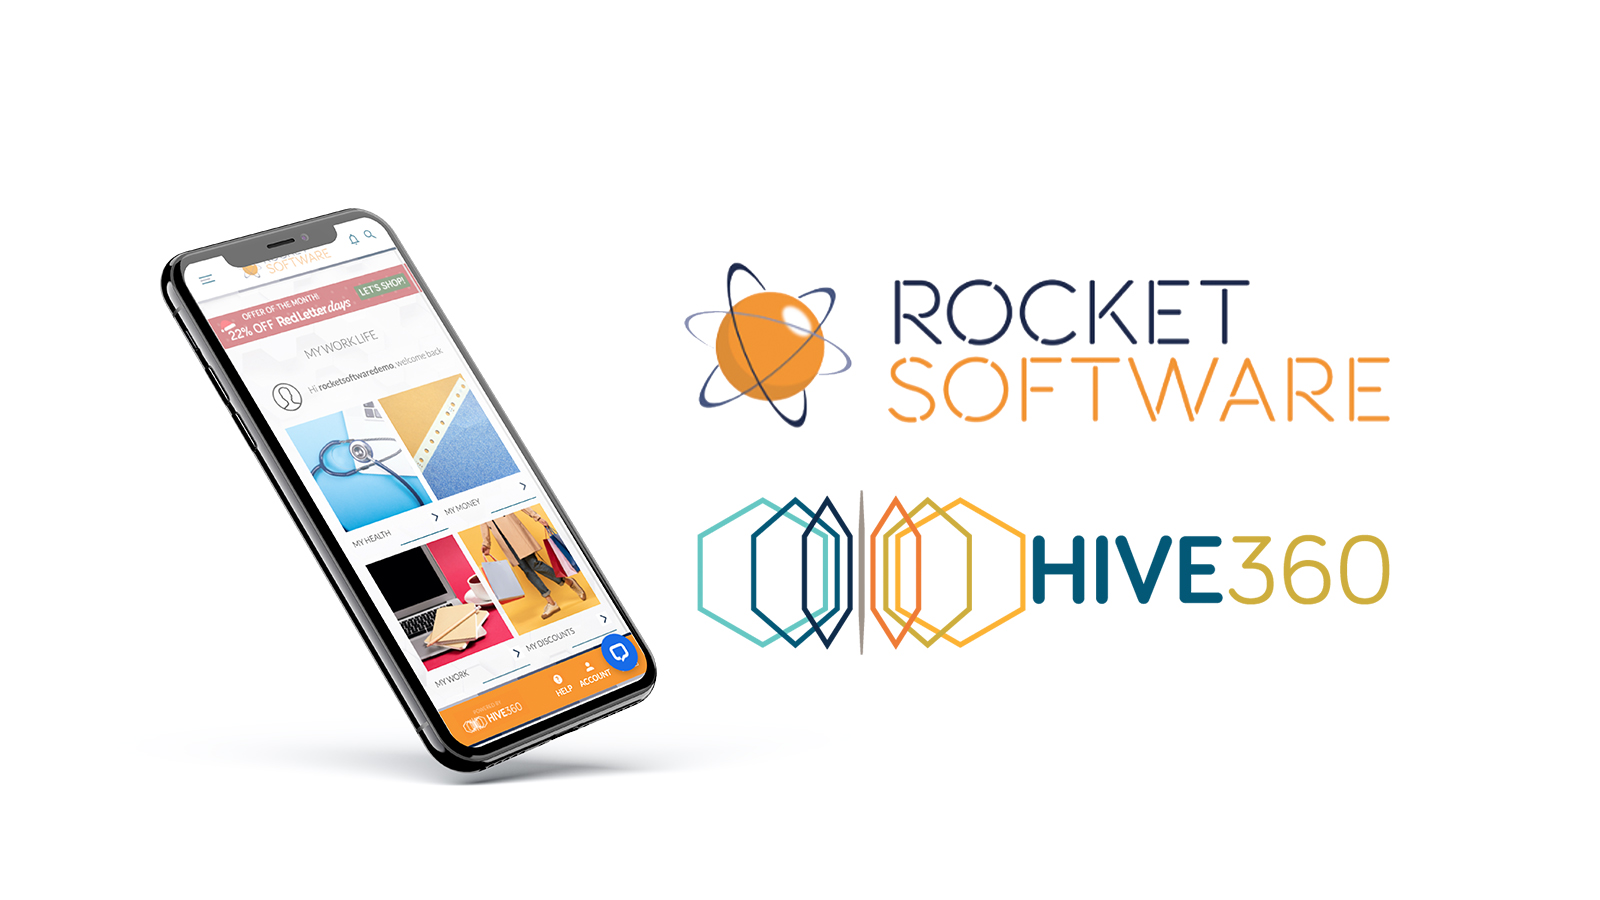 HIVE360 & Rocket Software Engage App